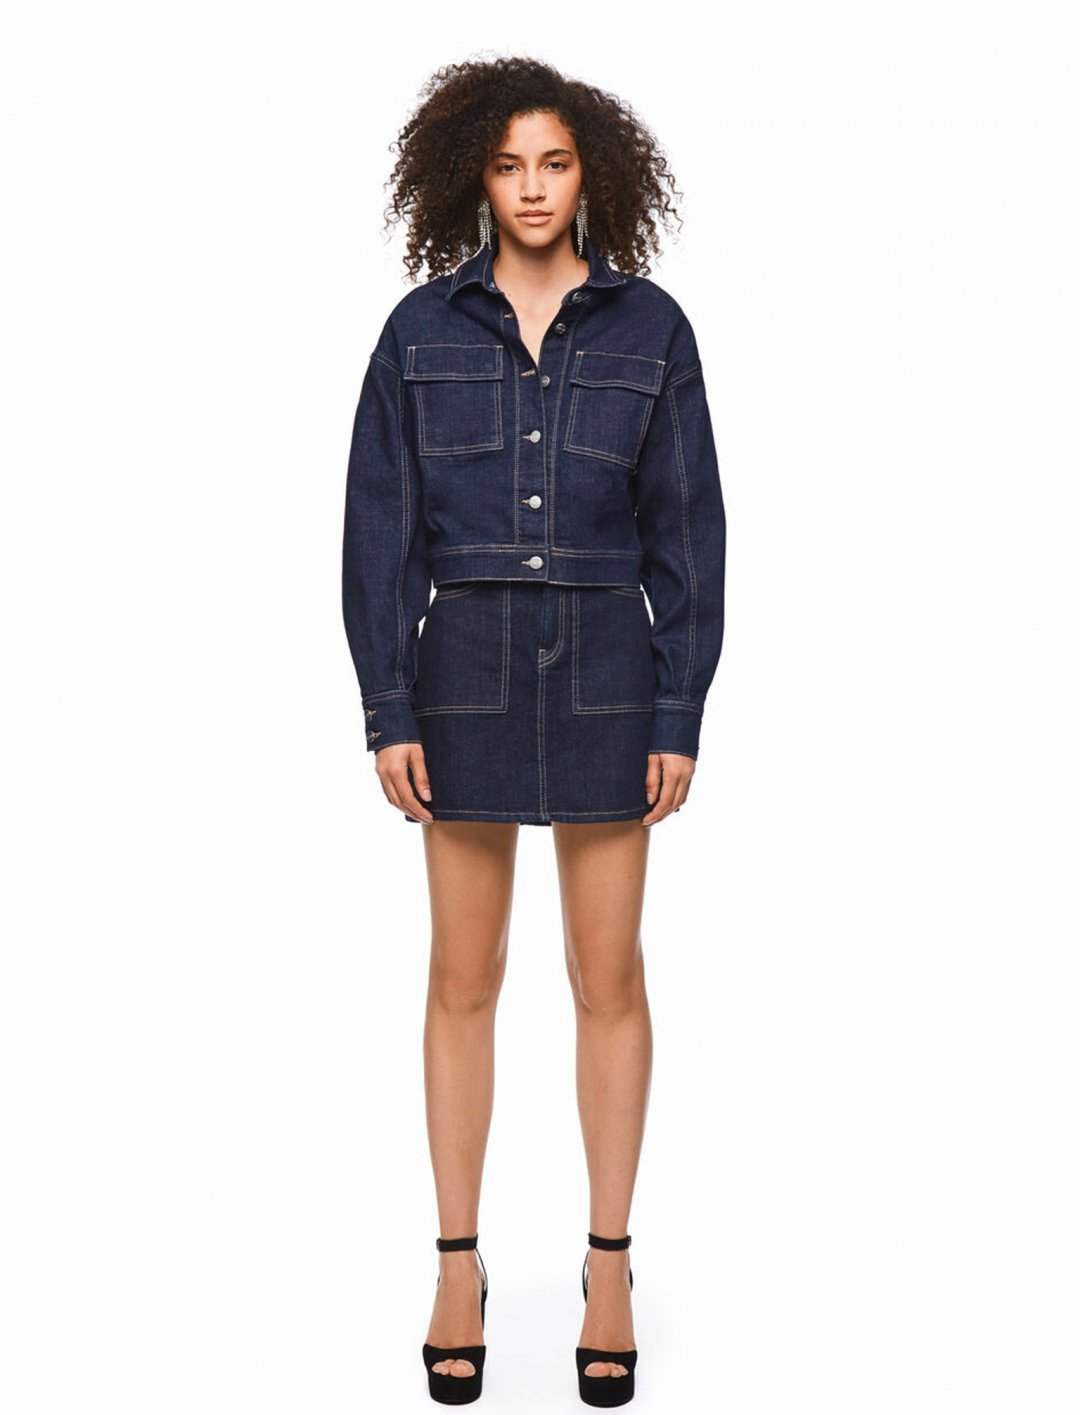 Raw Denim Jacket  Dua Lipa x Pepe Jeans